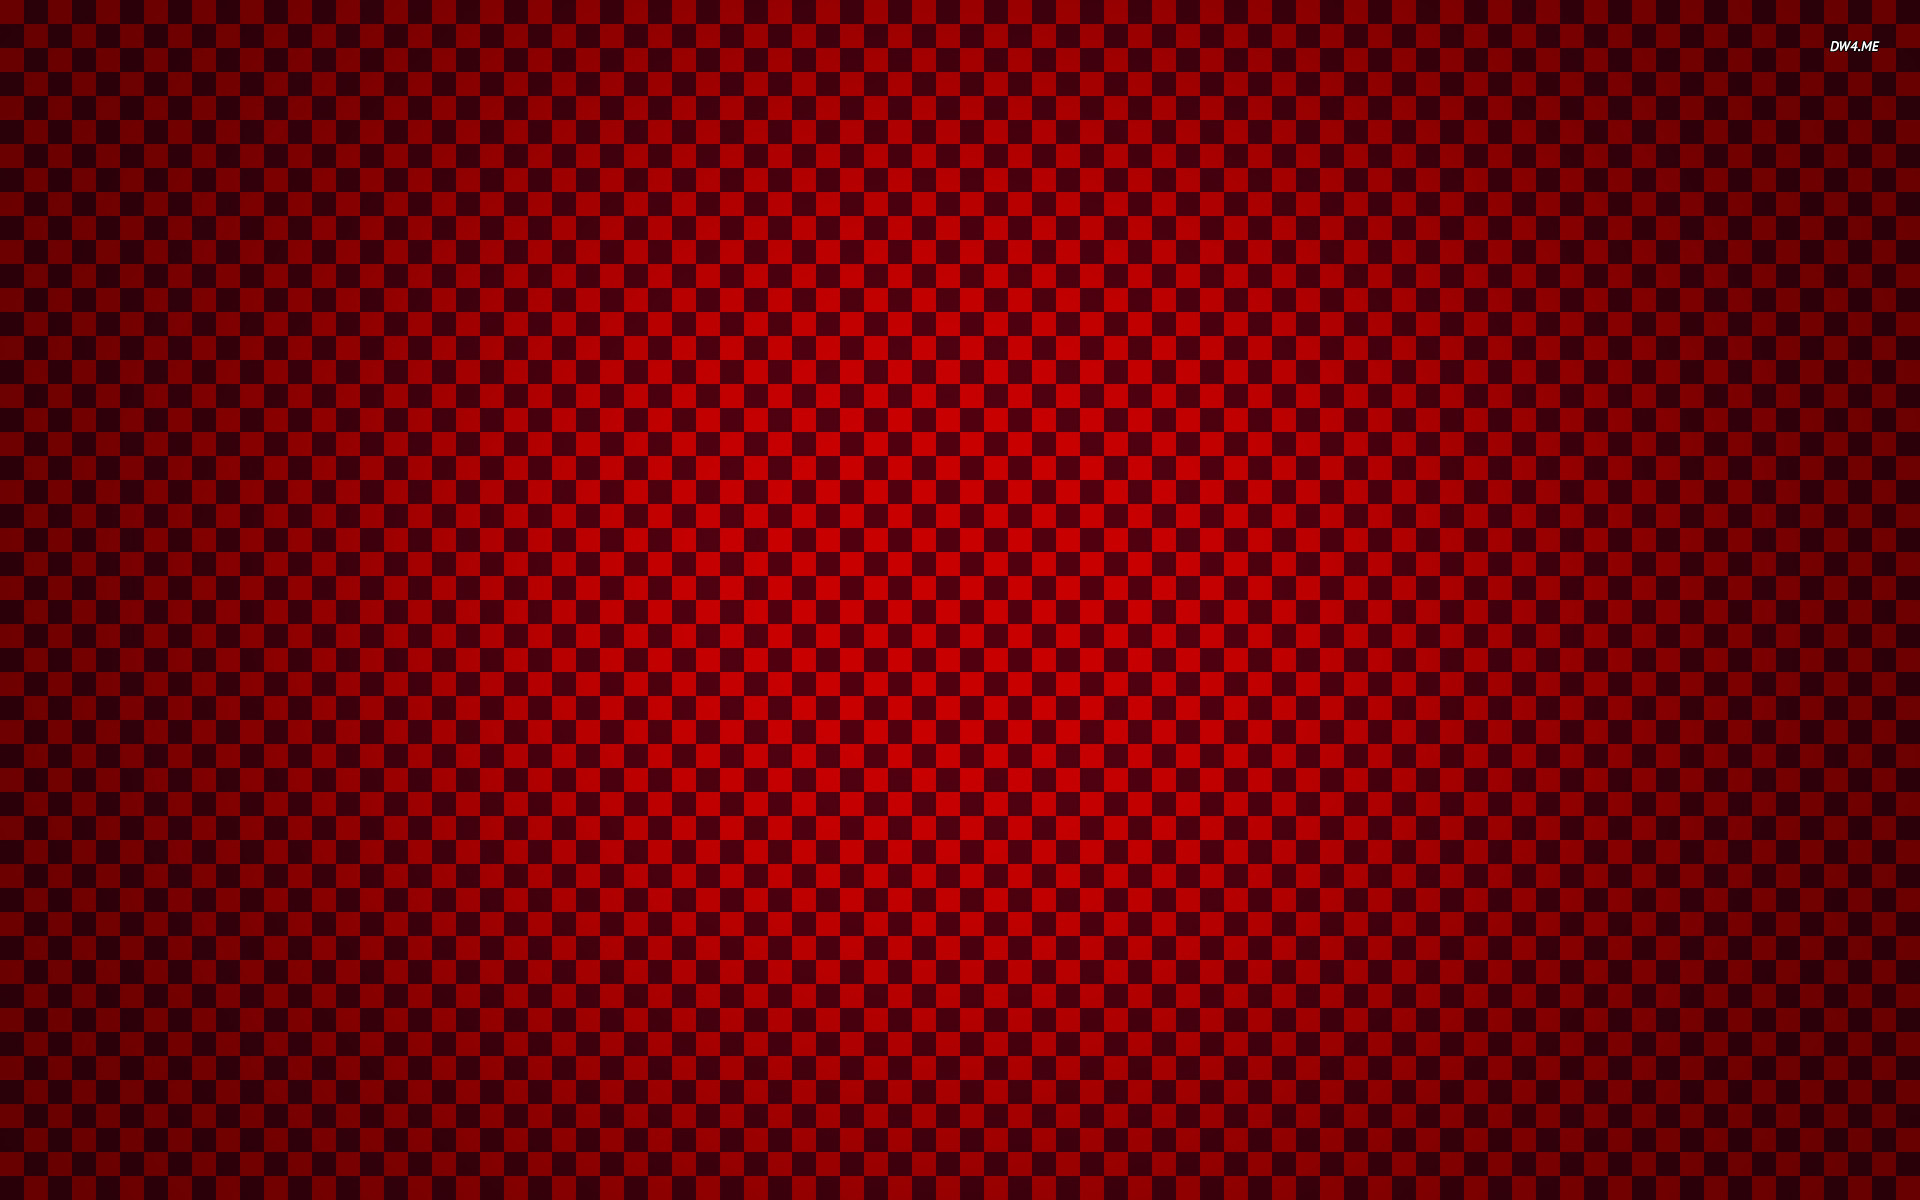 1920x1200 red checkered wallpaper Red checkered pattern wallpaper - Digital Art  wallpapers - #1283